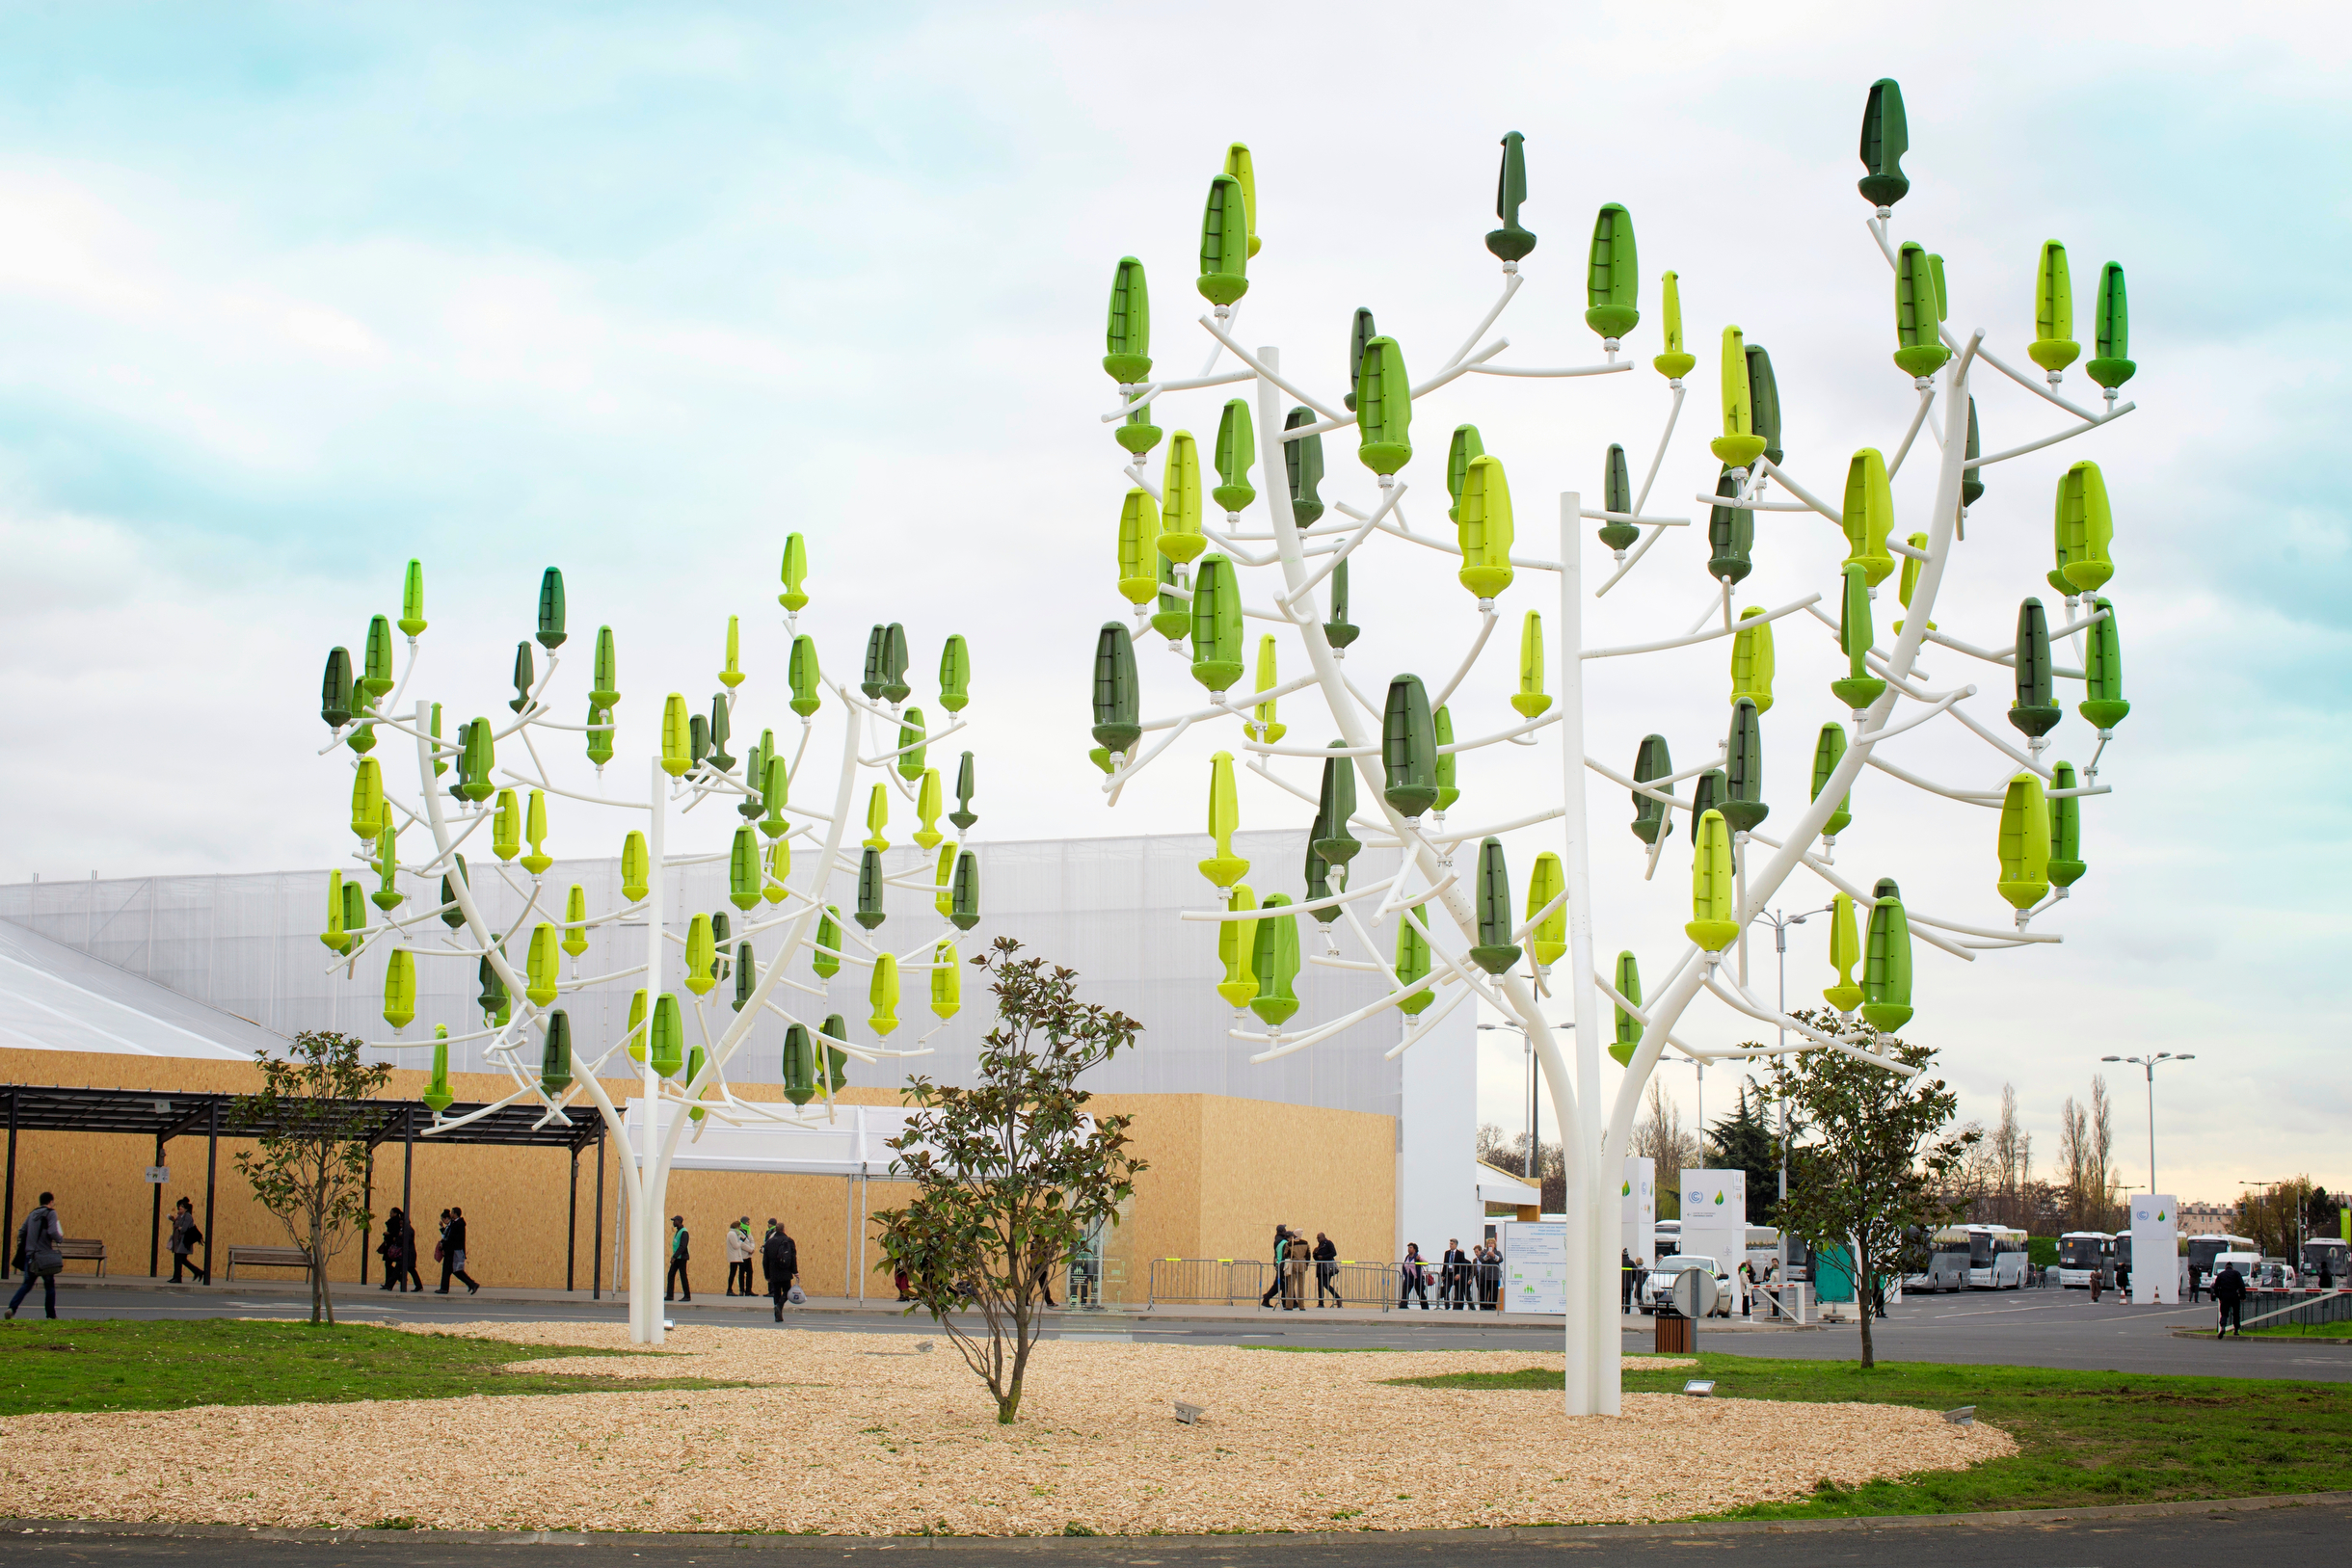 Urban 'Wind Trees' generate electricity from breezes